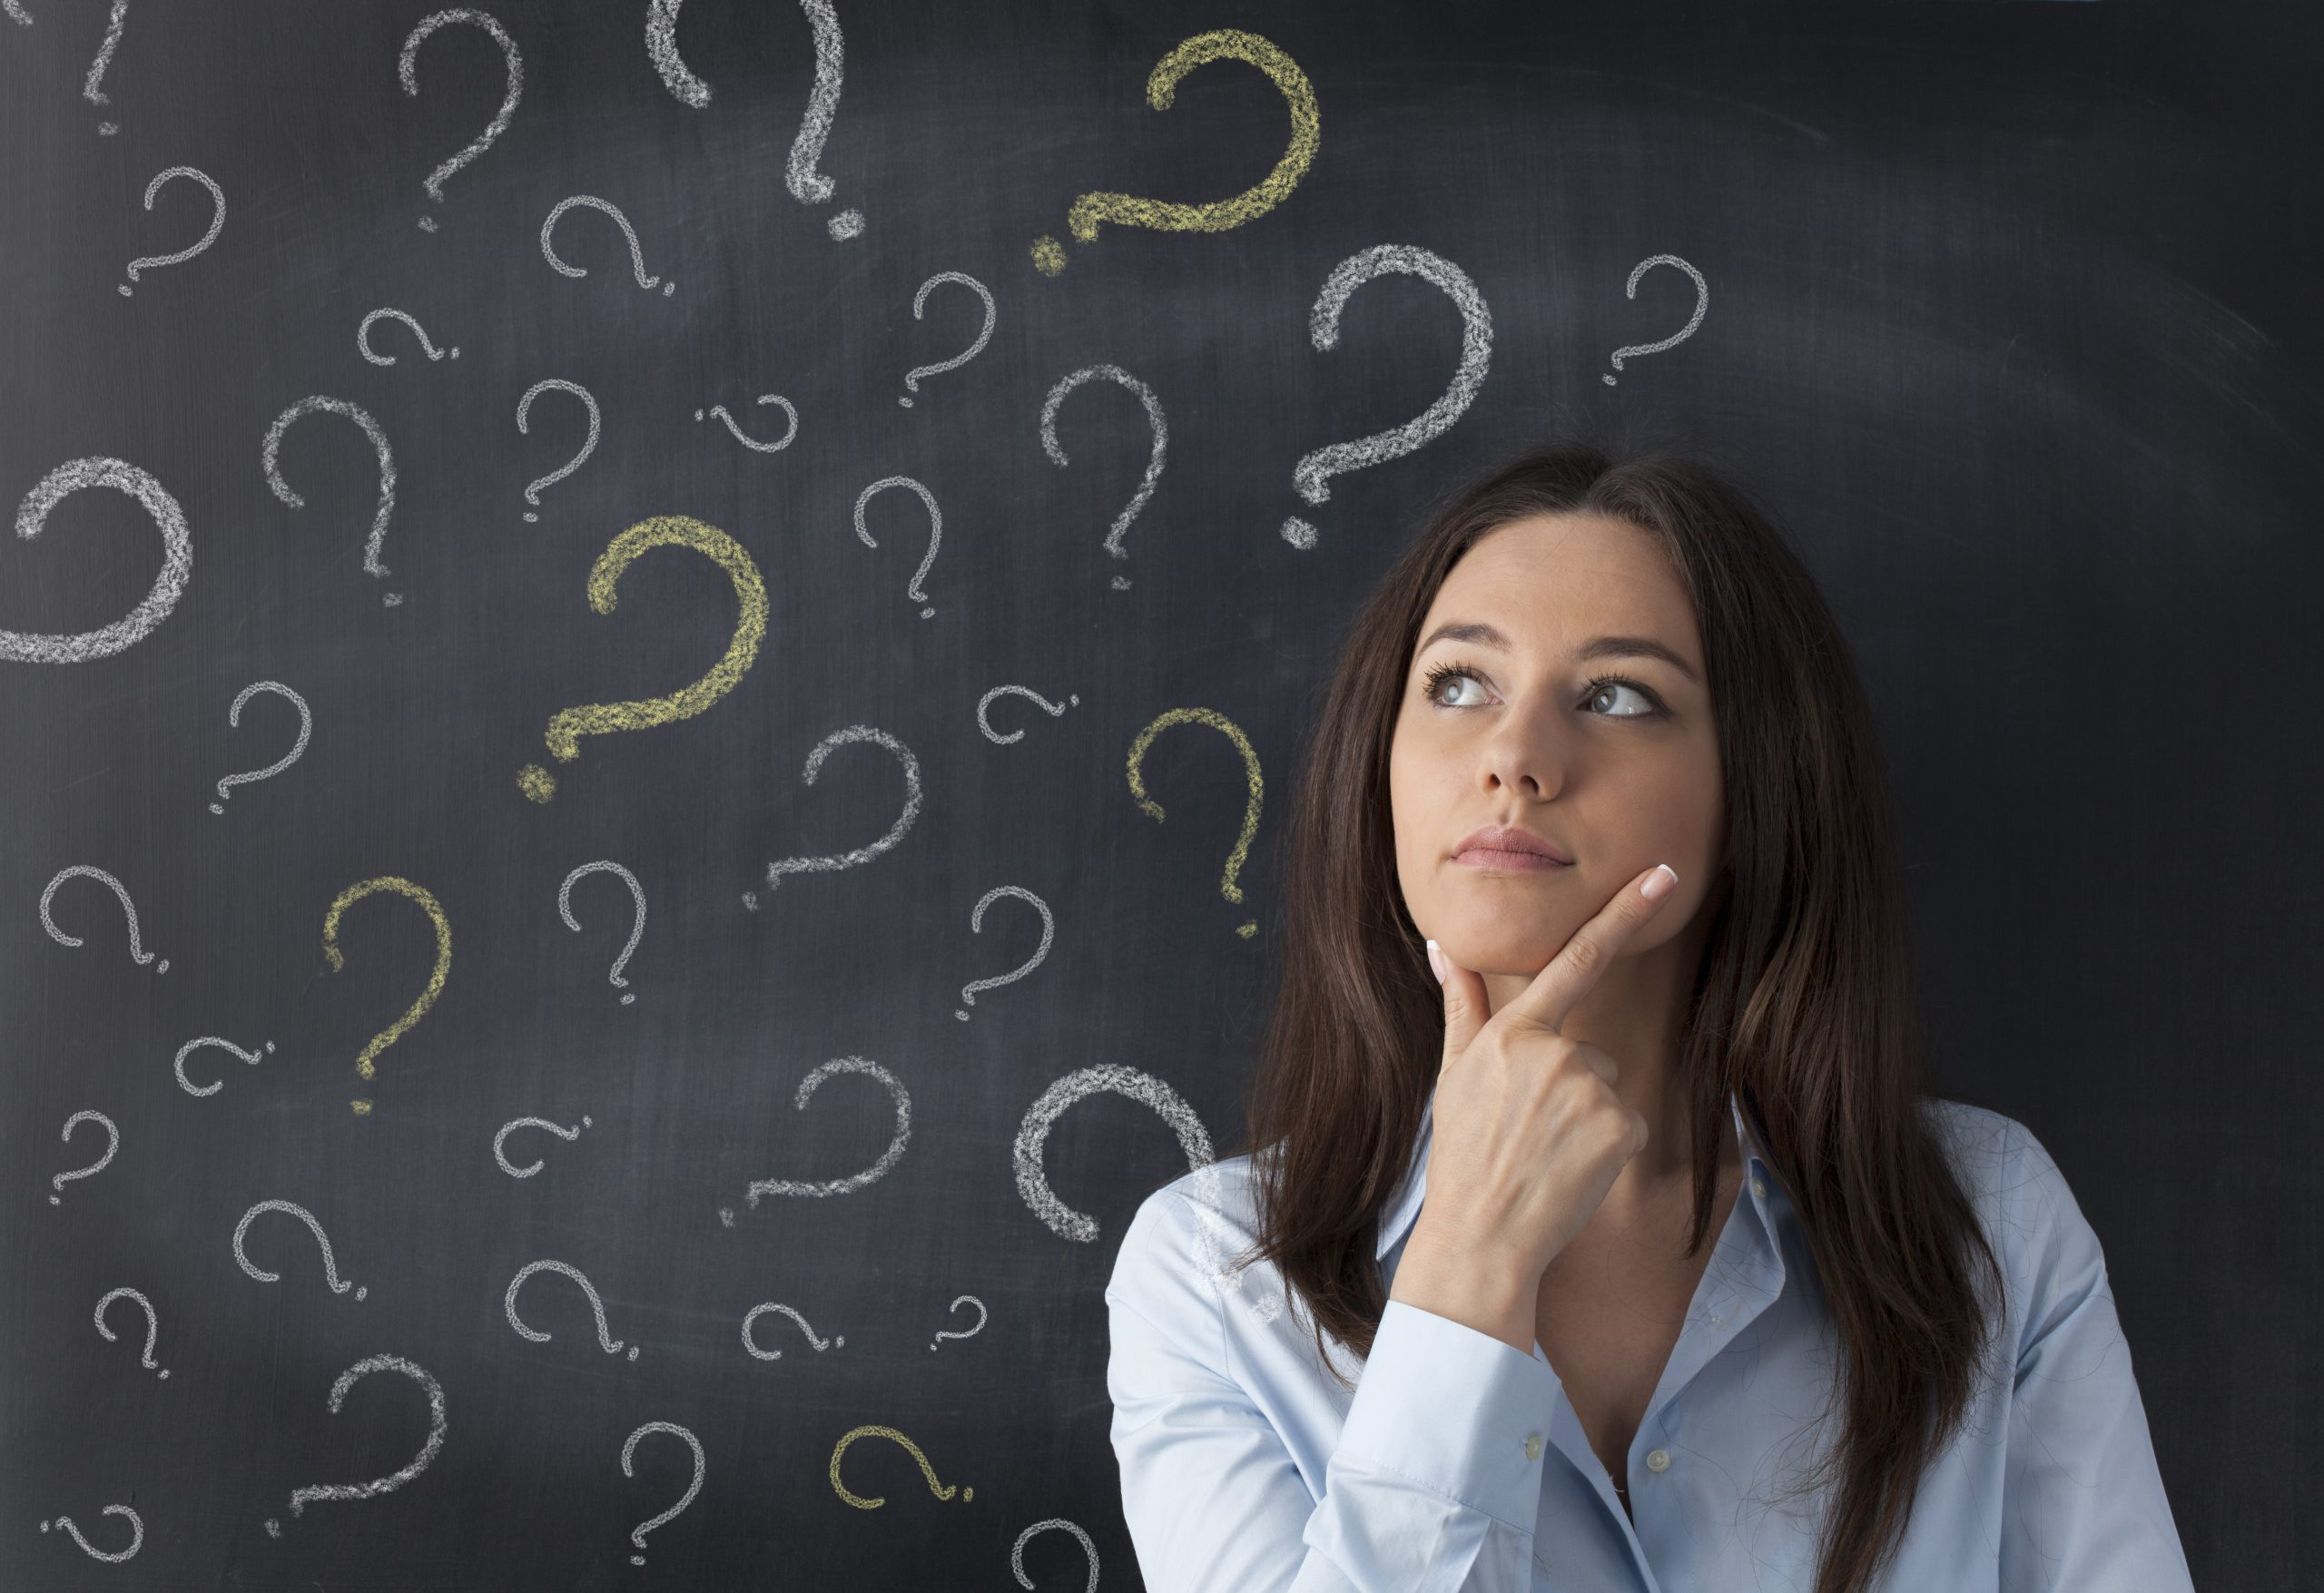 6 Questions You Must Ask Yourself Before Any Big Business Decision